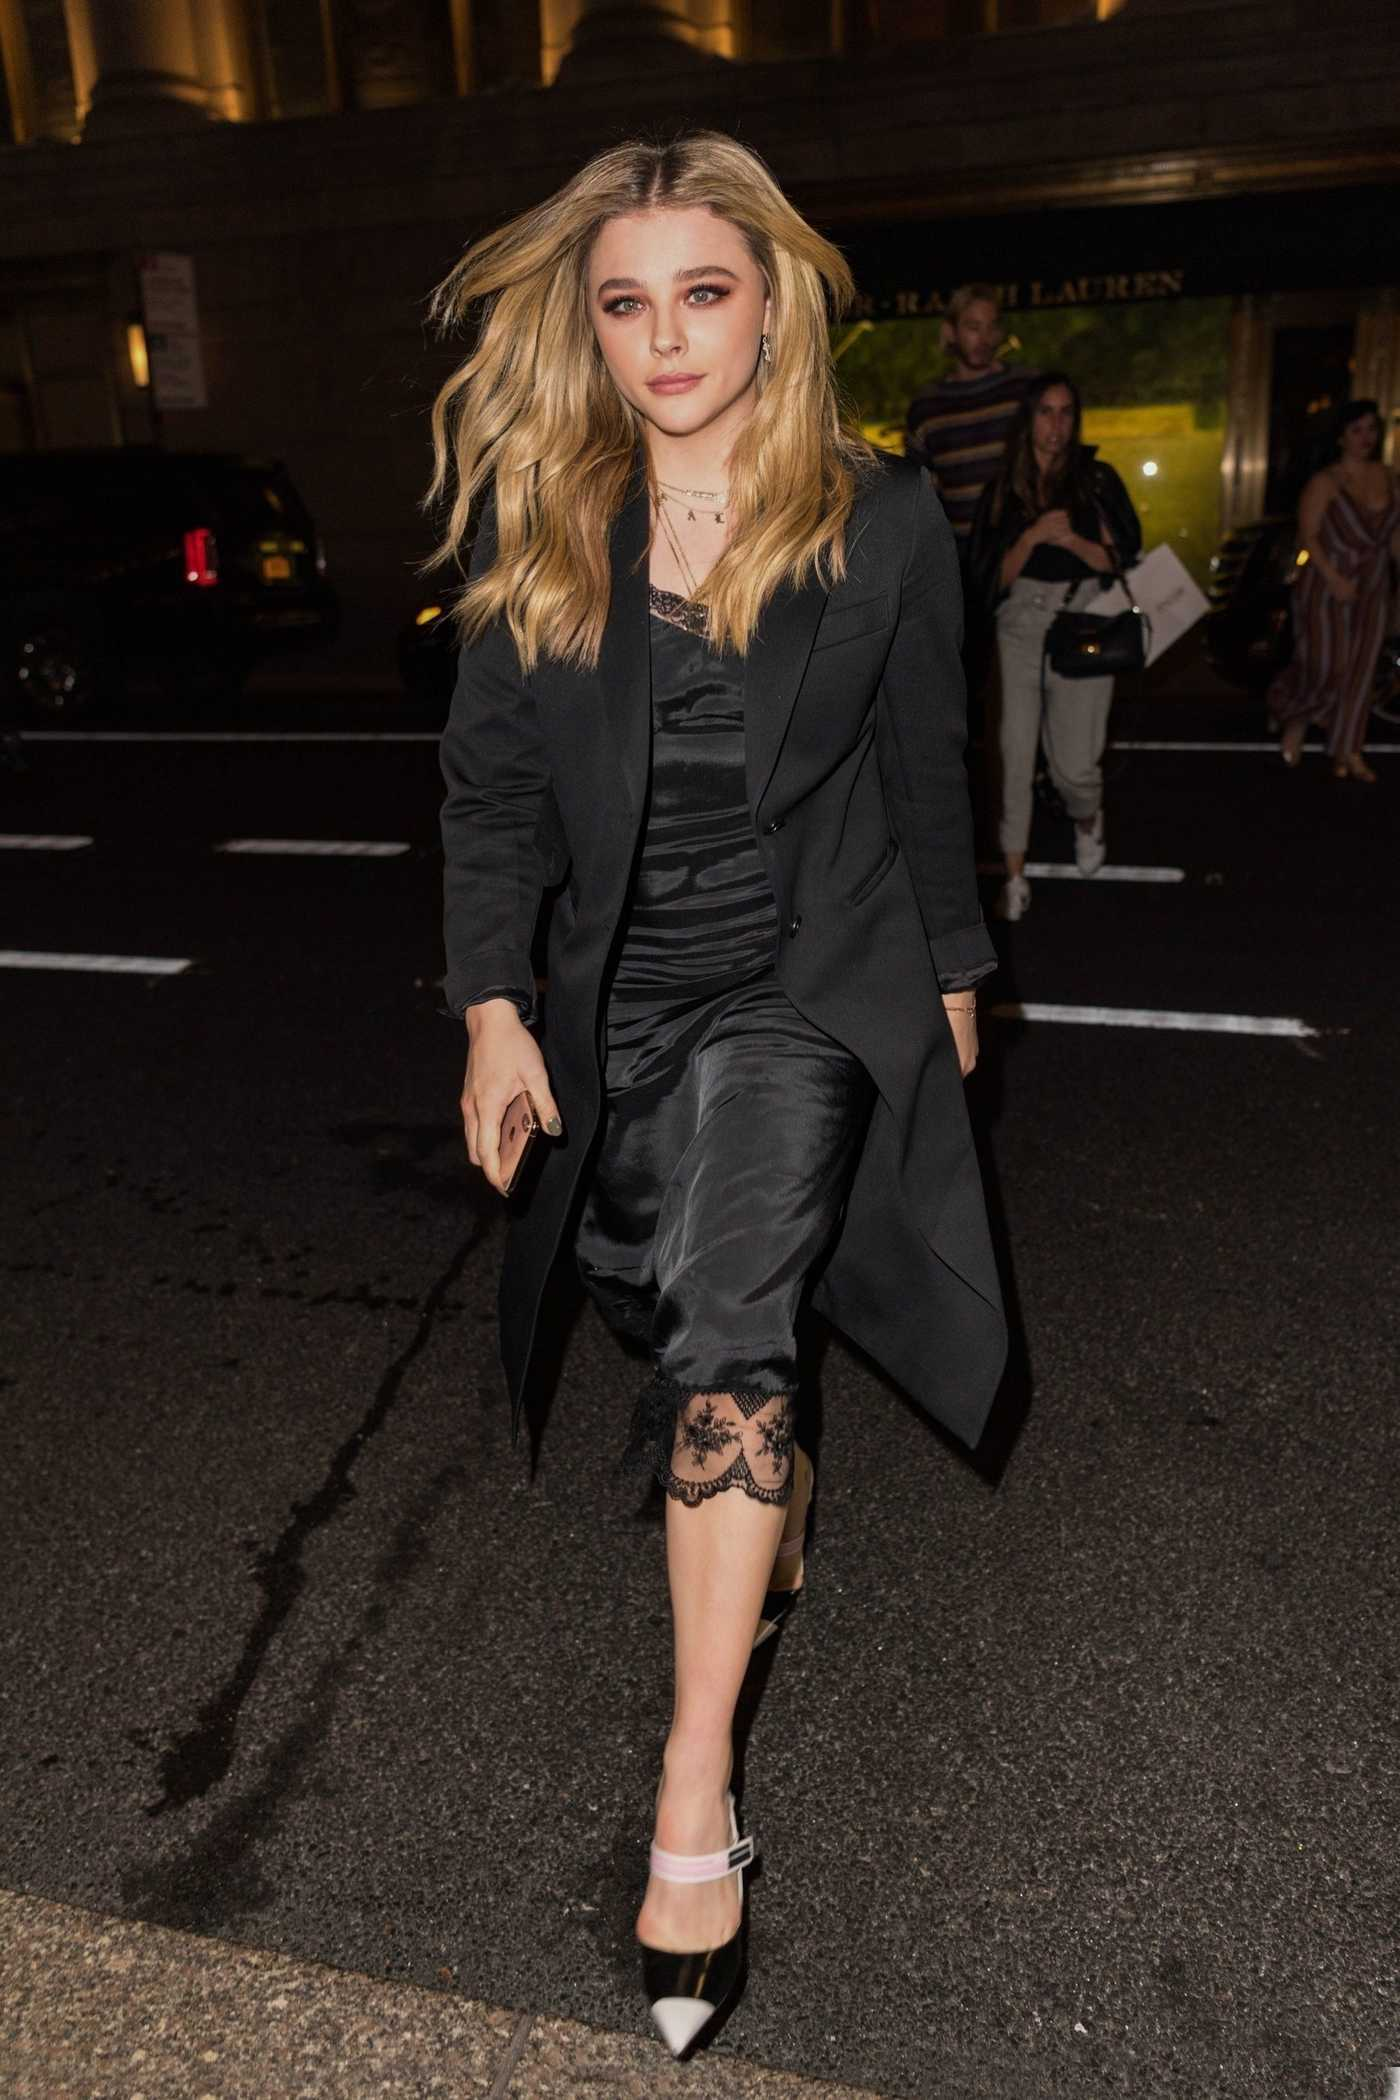 Chloe Moretz Leaves Ralph Polo Bar in NYC 10/09/2018